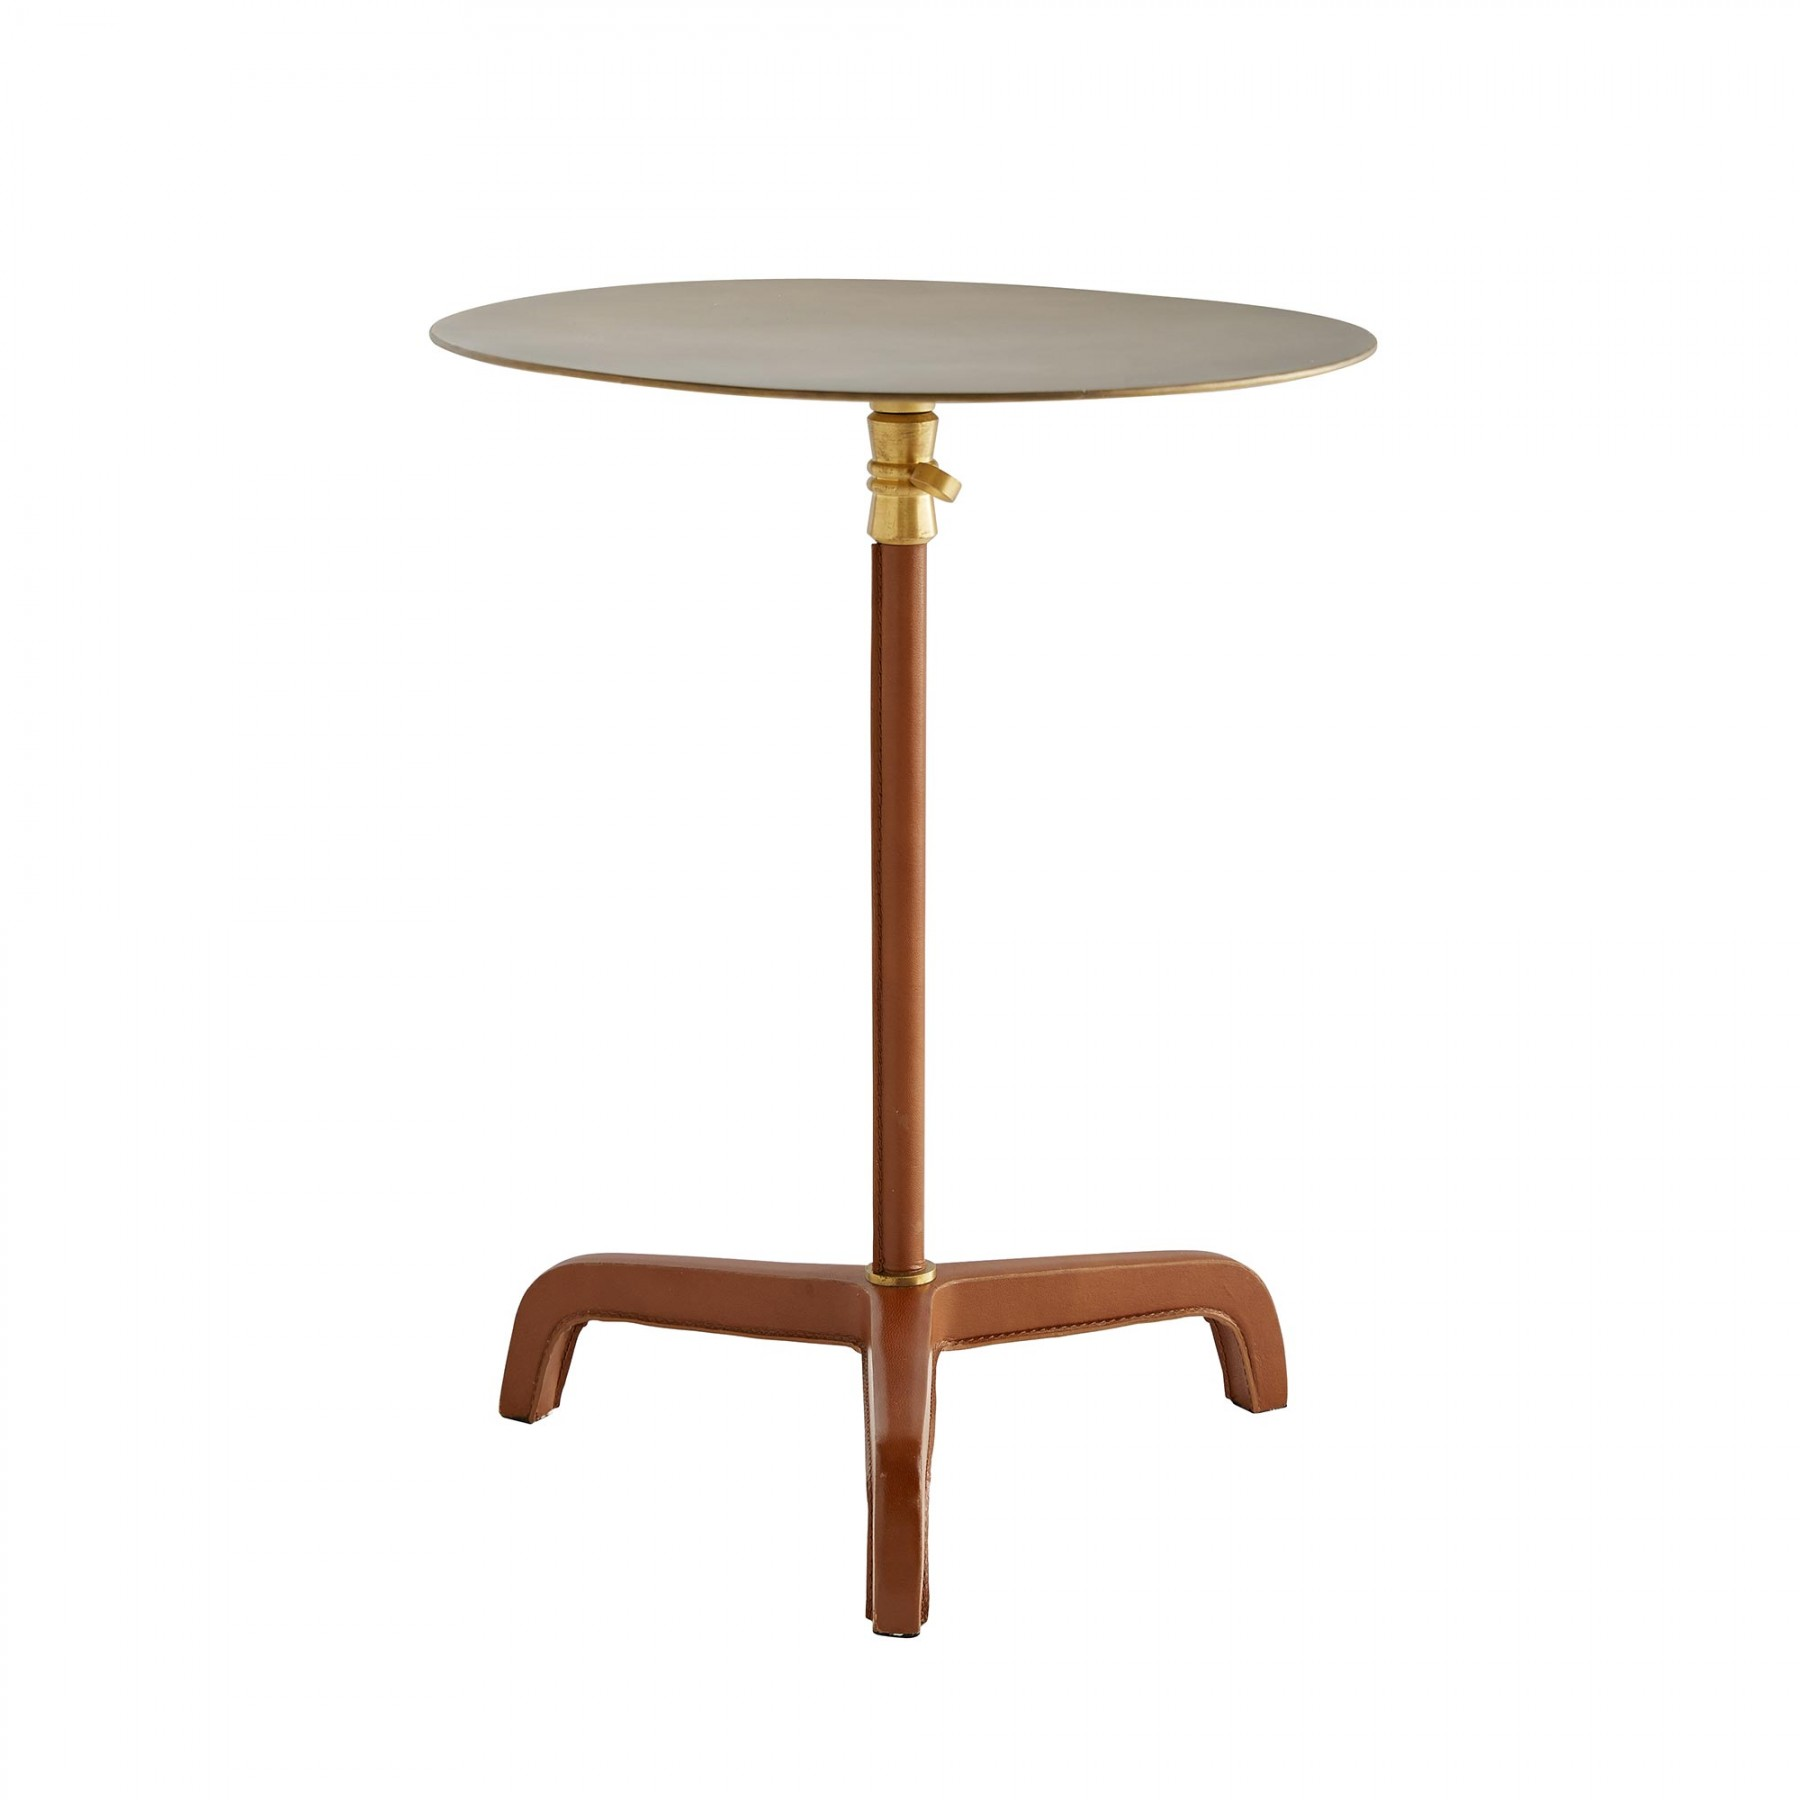 addison tall accent table target drawer round sofa narrow west elm mid century rug red outdoor wood hairpin coffee marble glass top low person square dining activity pier imports